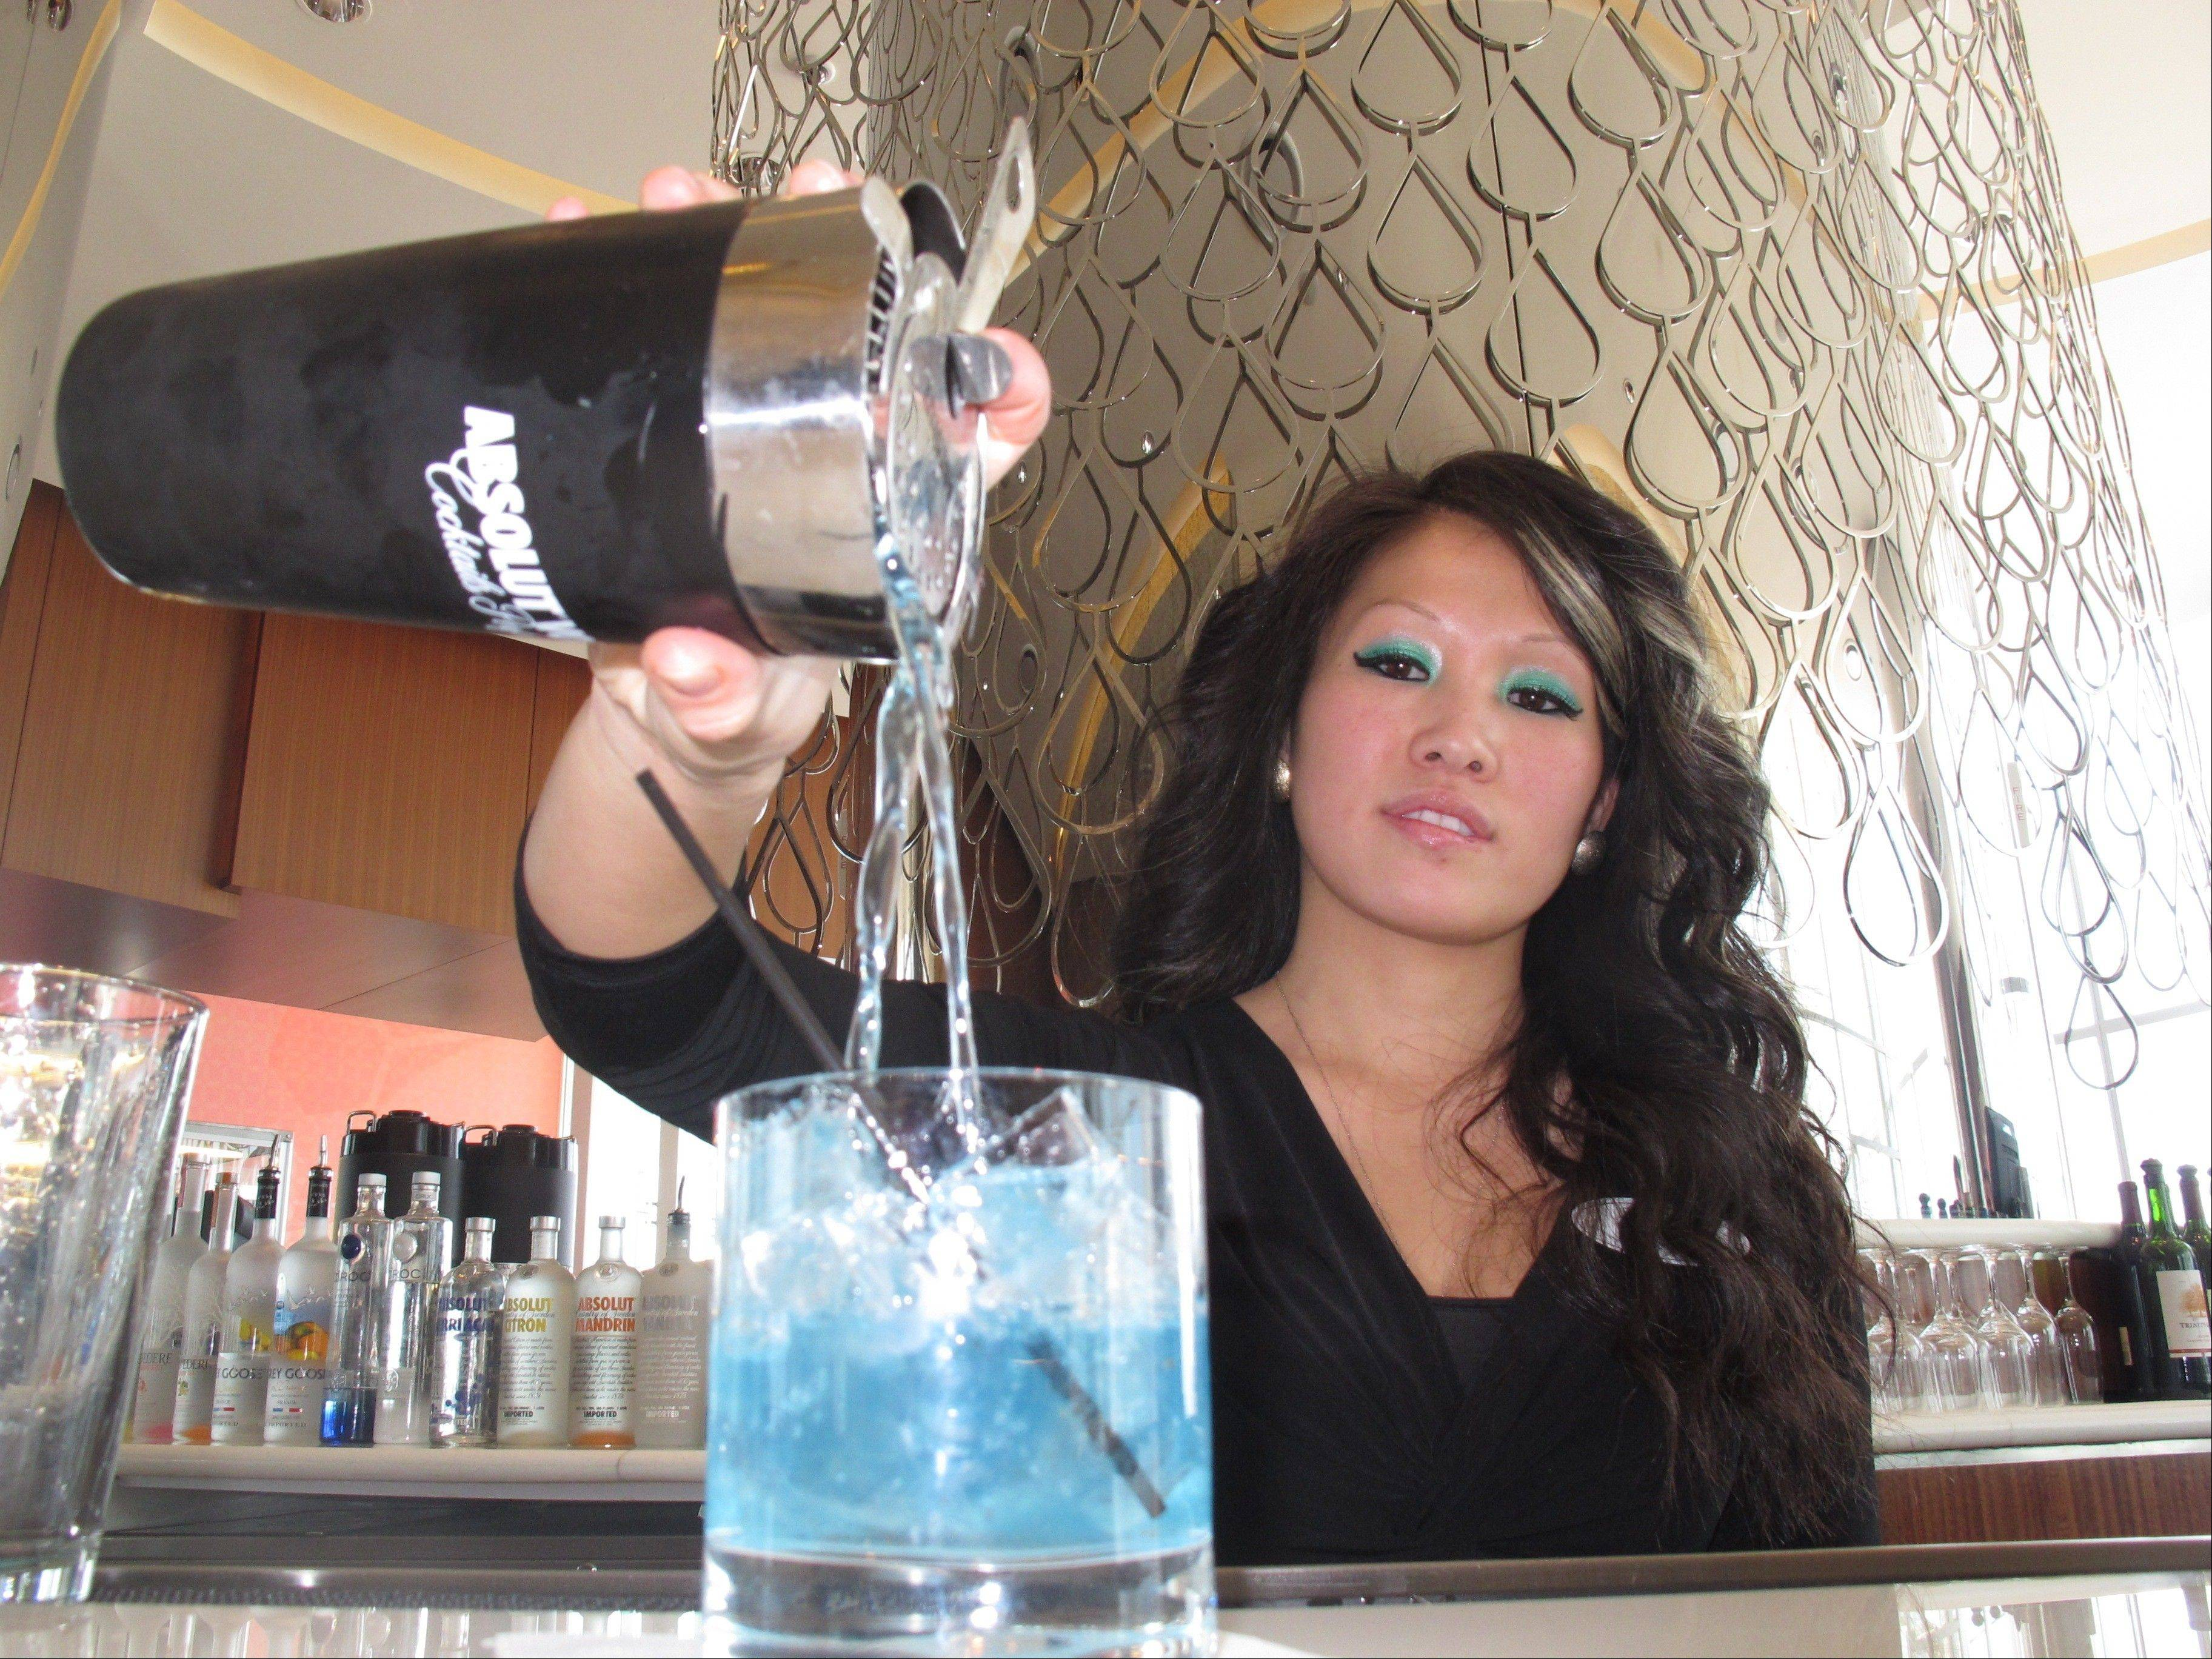 Mary Ma, a bartender at Revel in Atlantic City, N.J., pours a drink at one of the casino's bars.